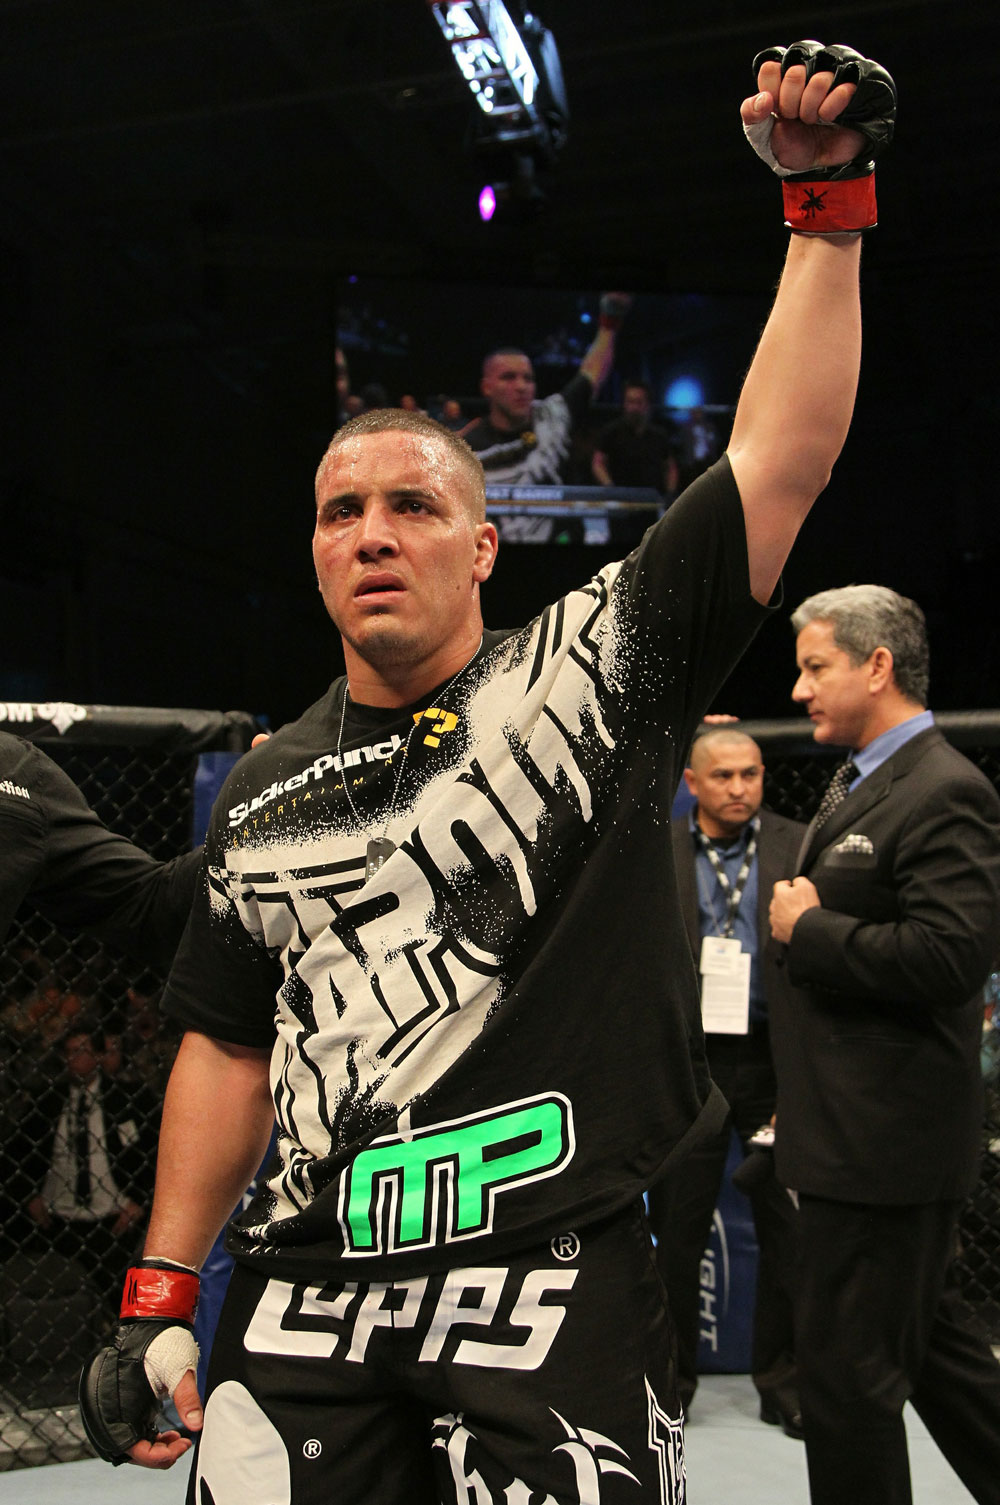 Pat Barry celebrates his win over Joey Beltran.